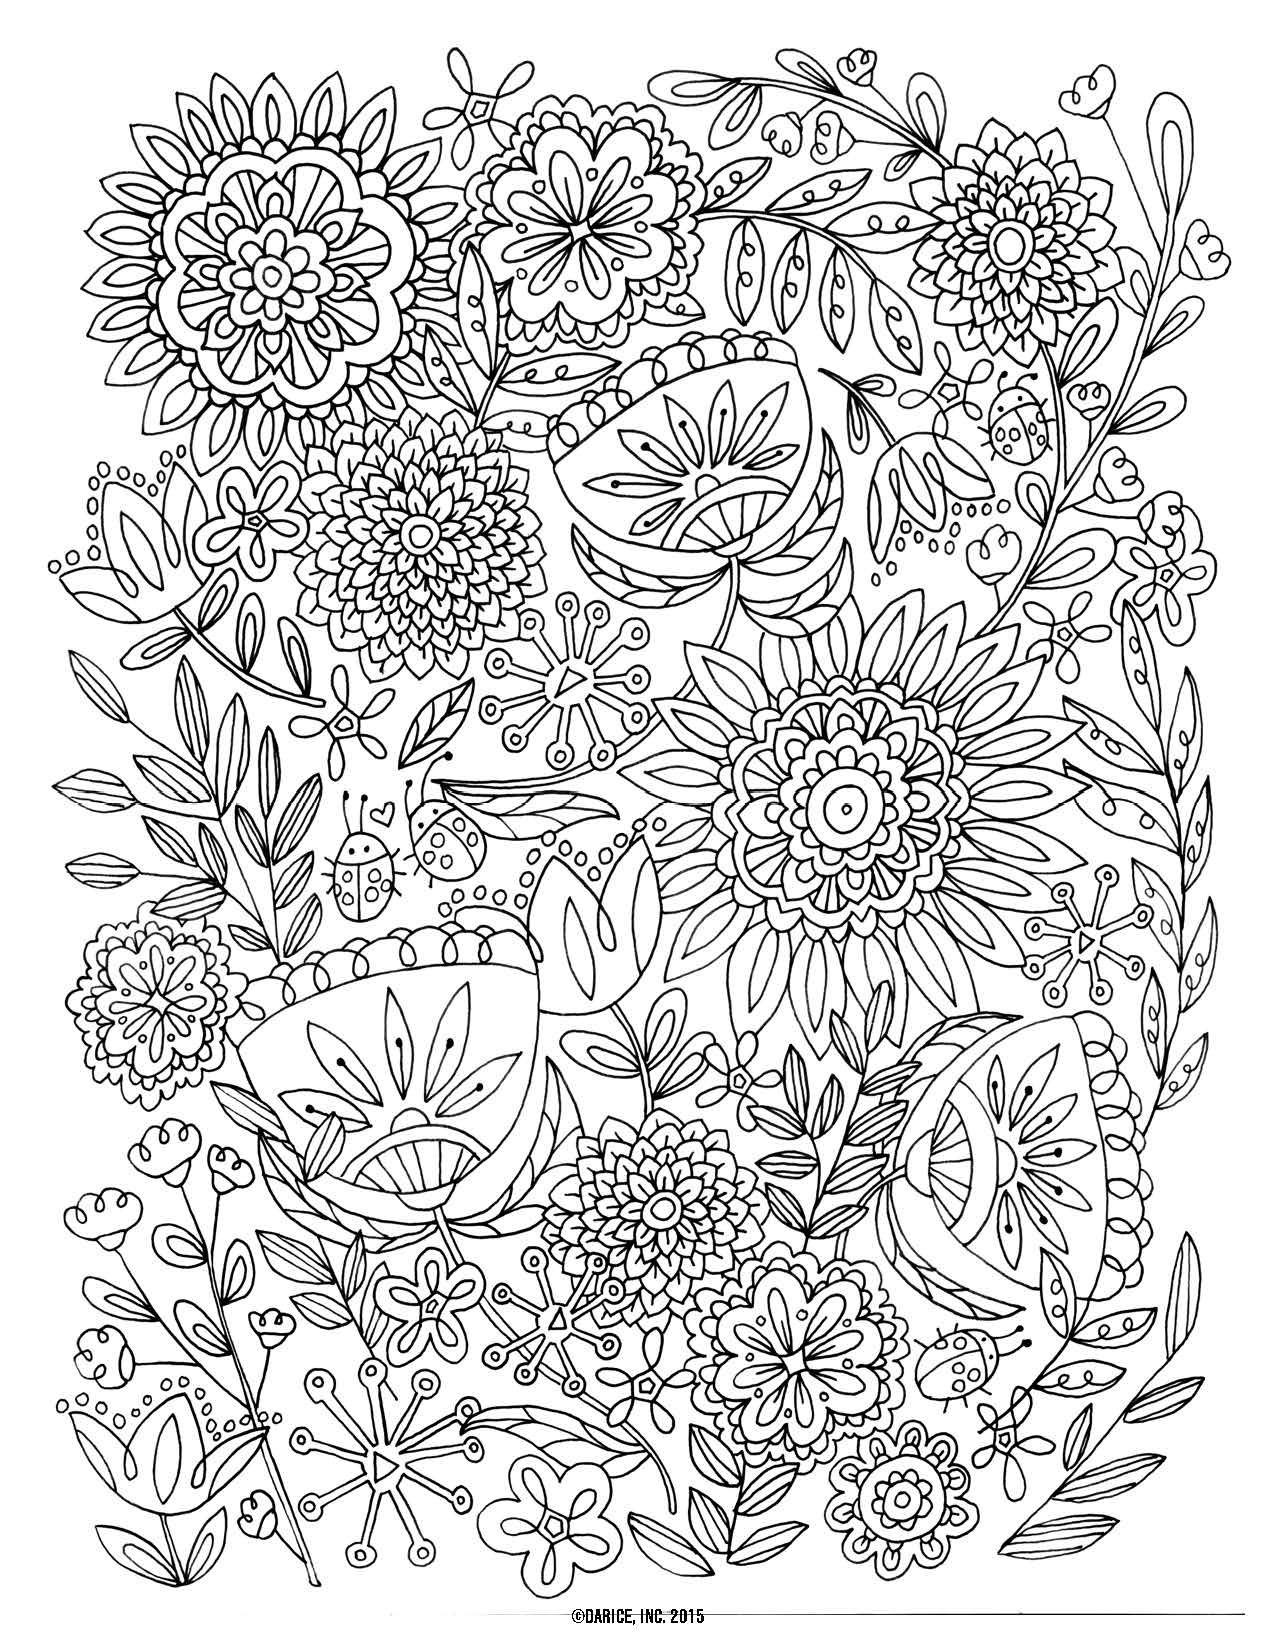 vase water feature of cool vases flower vase coloring page pages flowers in a top i 0d pertaining to flower coloring book pages free coloring pages printables cool vases flower vase coloring page pages